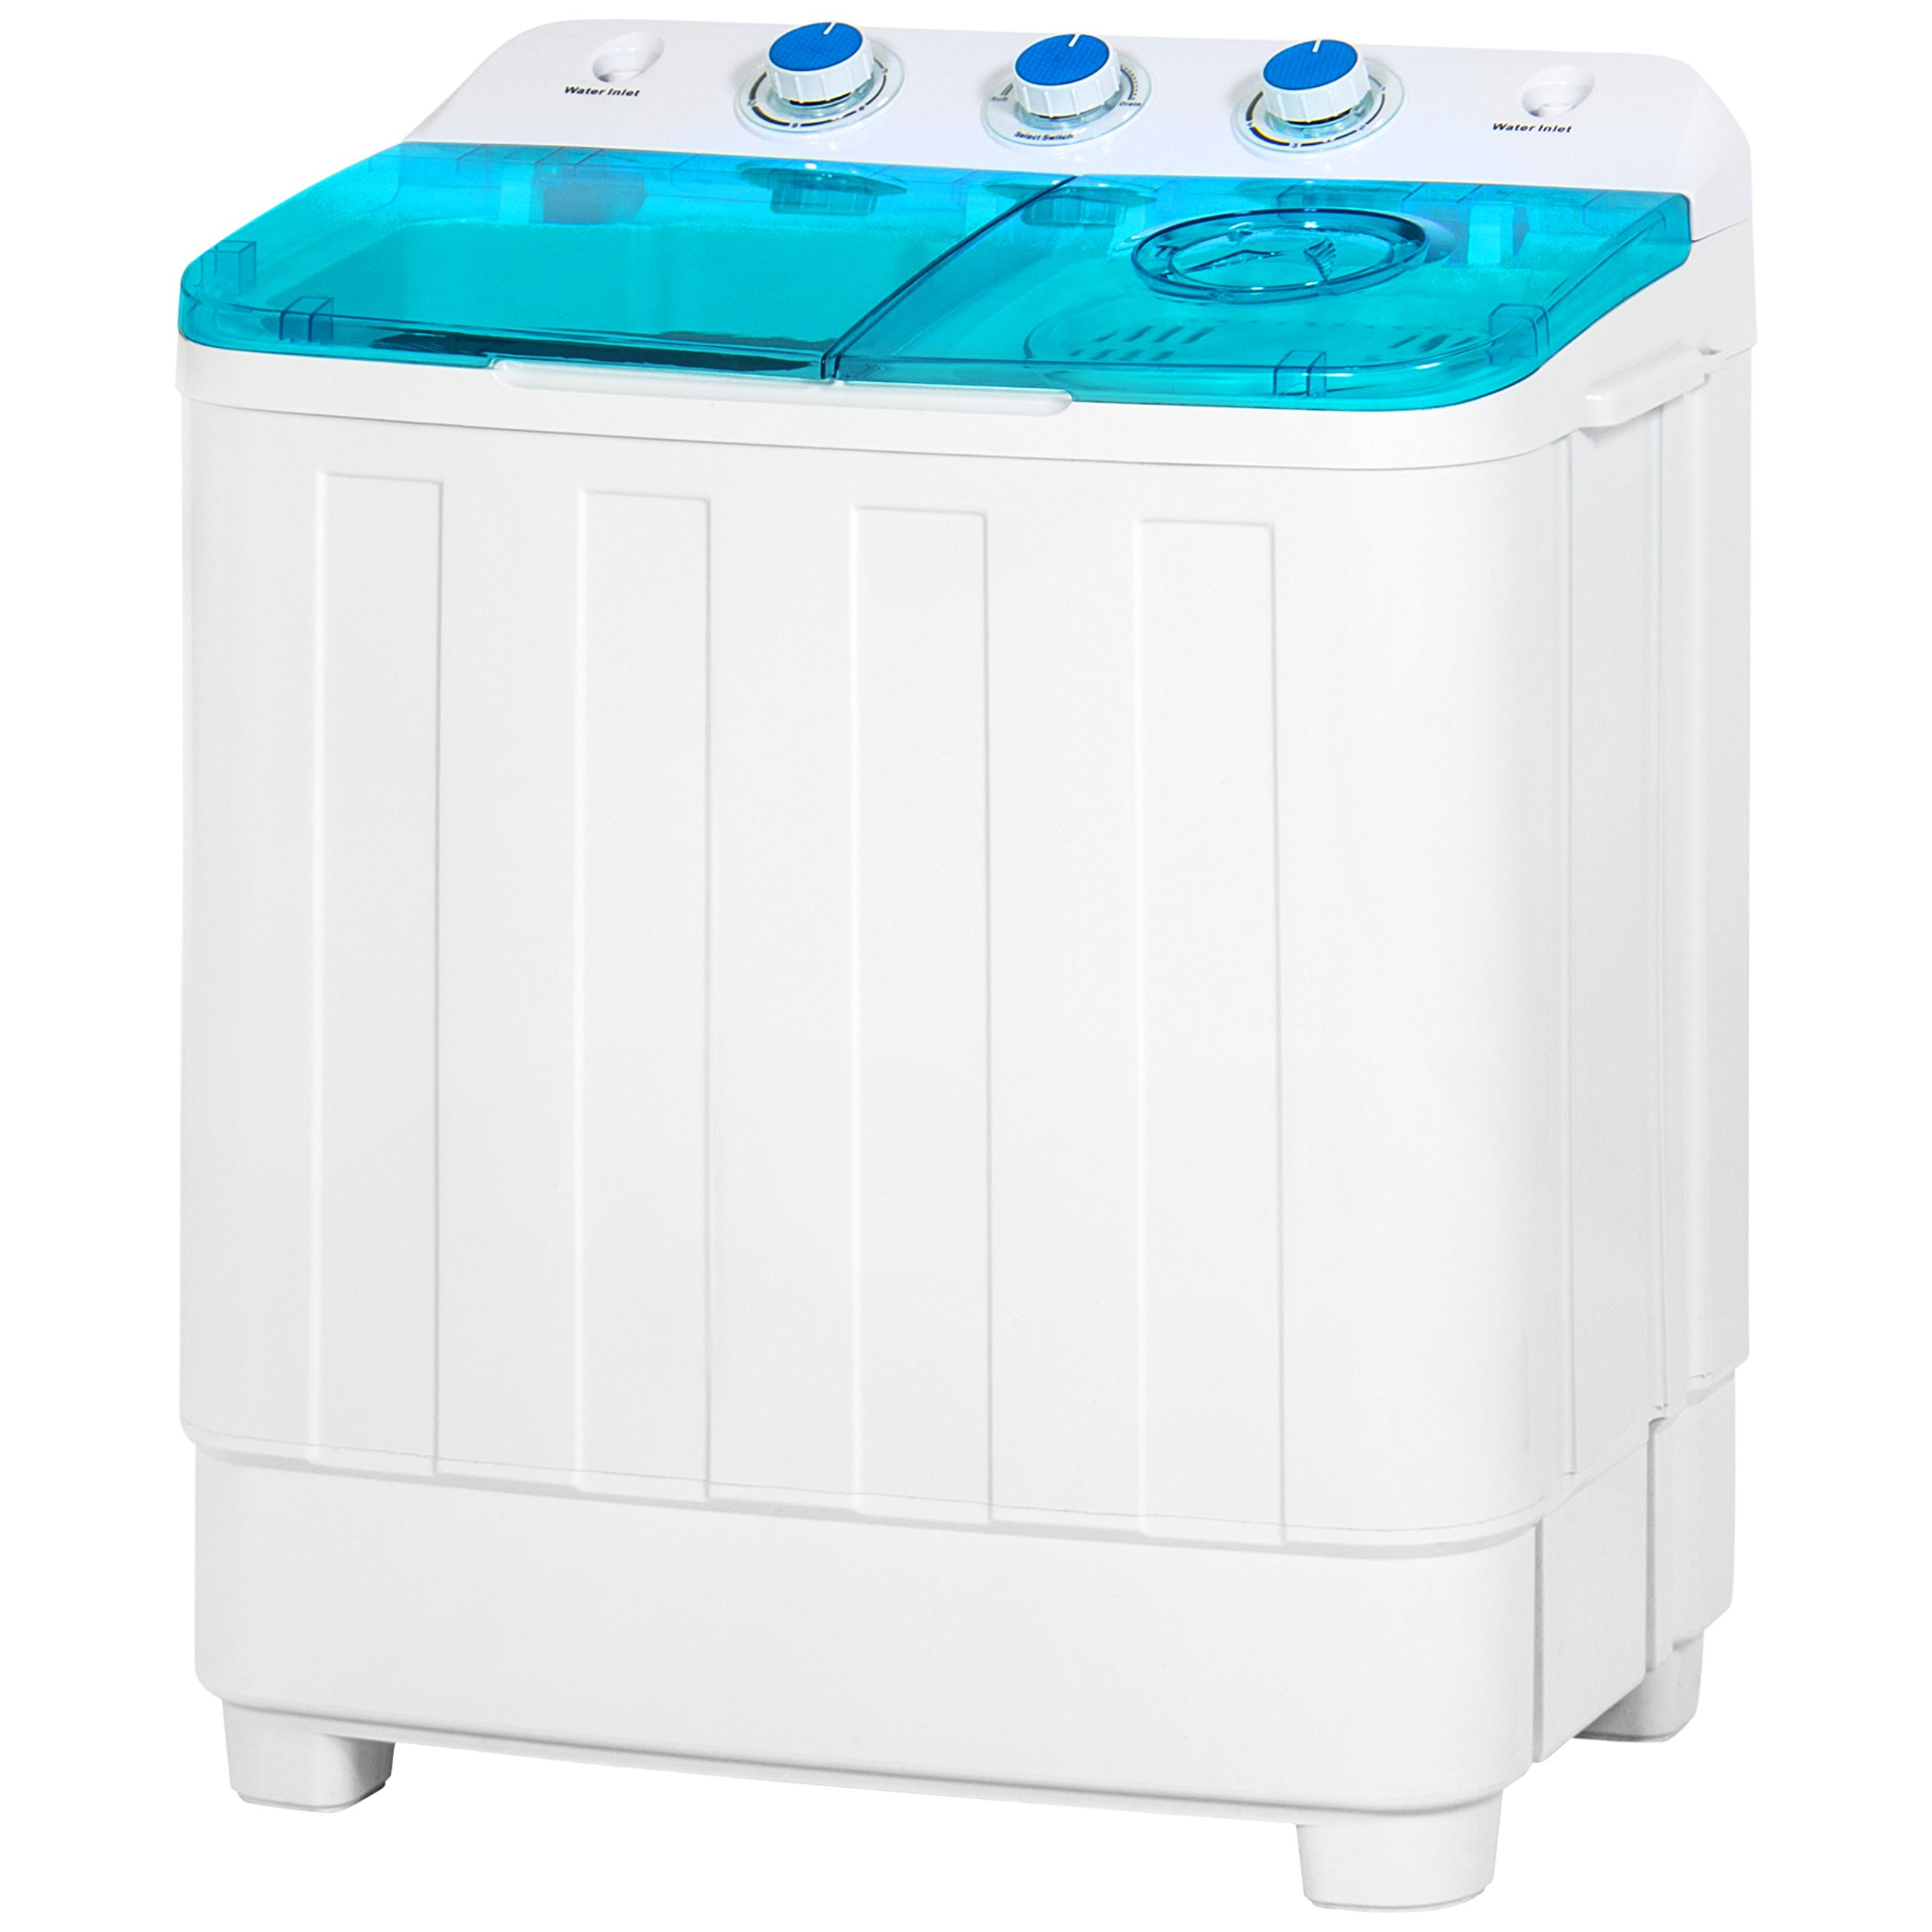 Best Choice Products Portable Mini Twin Tub Compact Washing Machine w/Spin Dry Cycle, 18lb Load Capacity by Best Choice Products